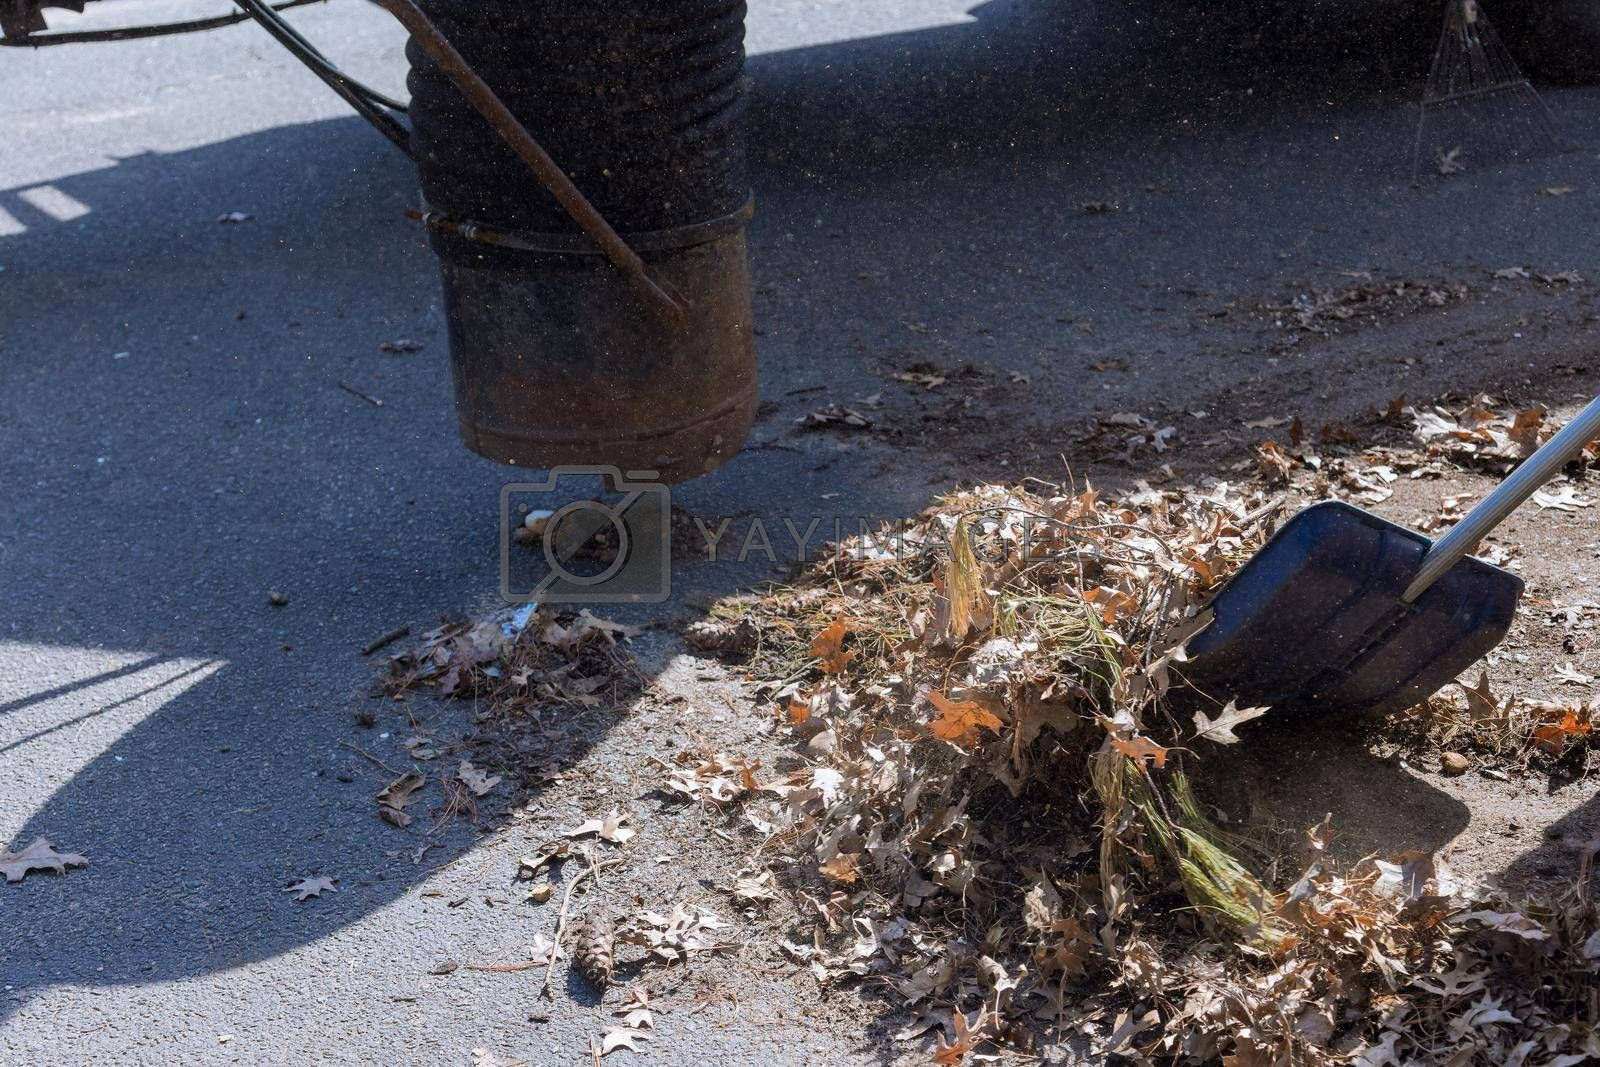 Outdoor manual worker clean the fallen leaves on vacuum up in the road by autumn